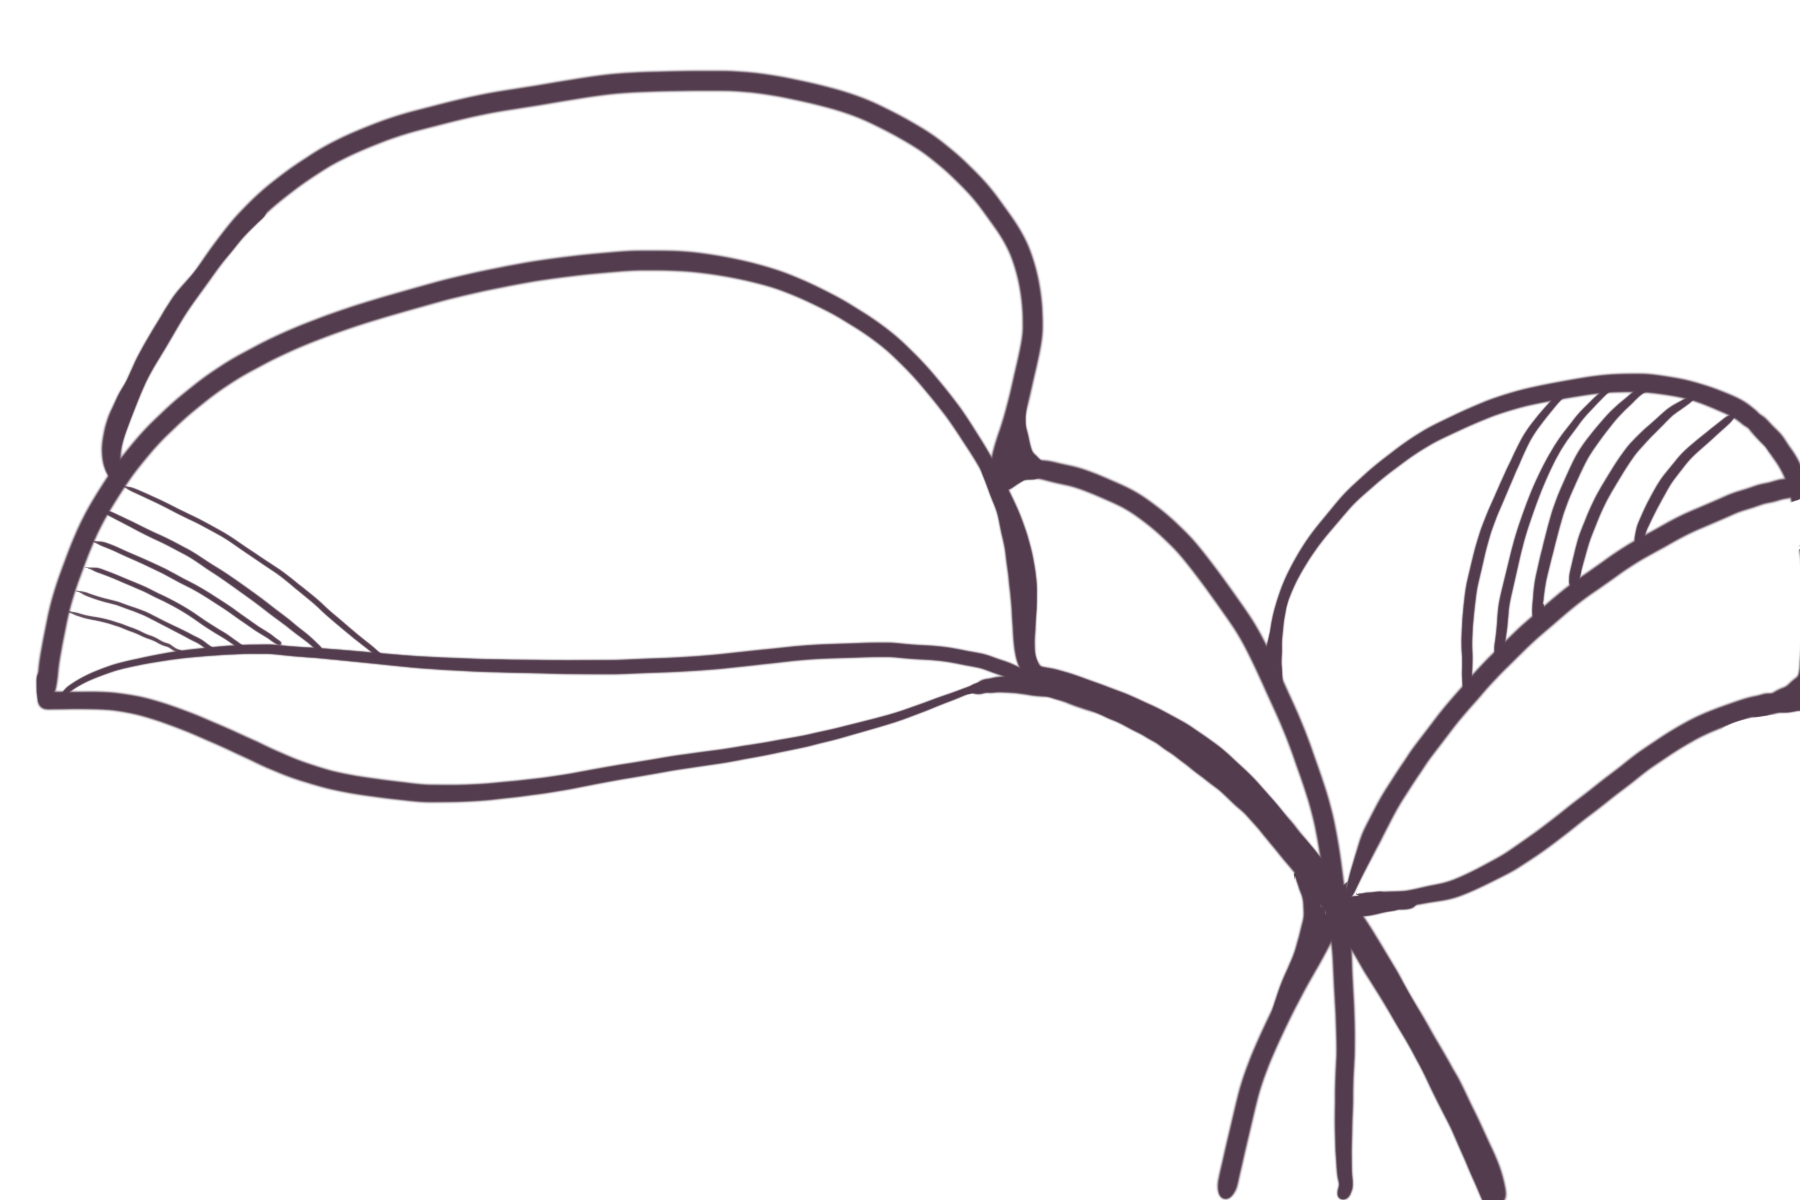 Line_Leaves_03-17.png